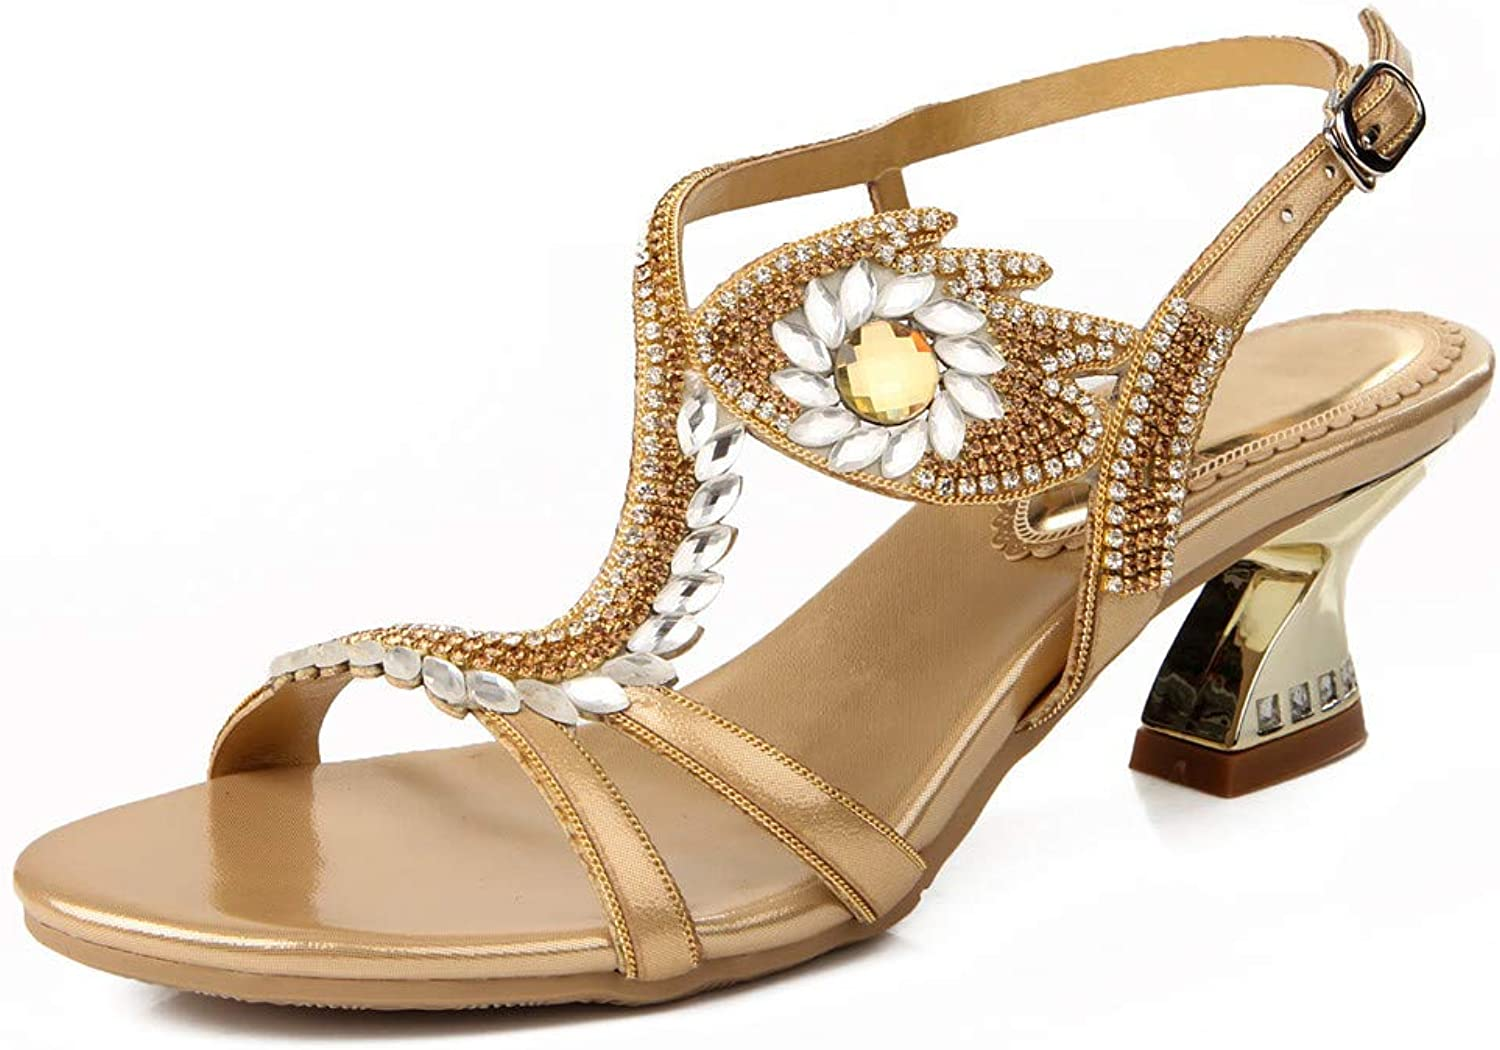 LLBubble Kitten Heels Rhinestone Sandals for Wedding Bridal Open Toe Buckle Leather Prom Evening Party Ladies Summer Sandals ZX-L003